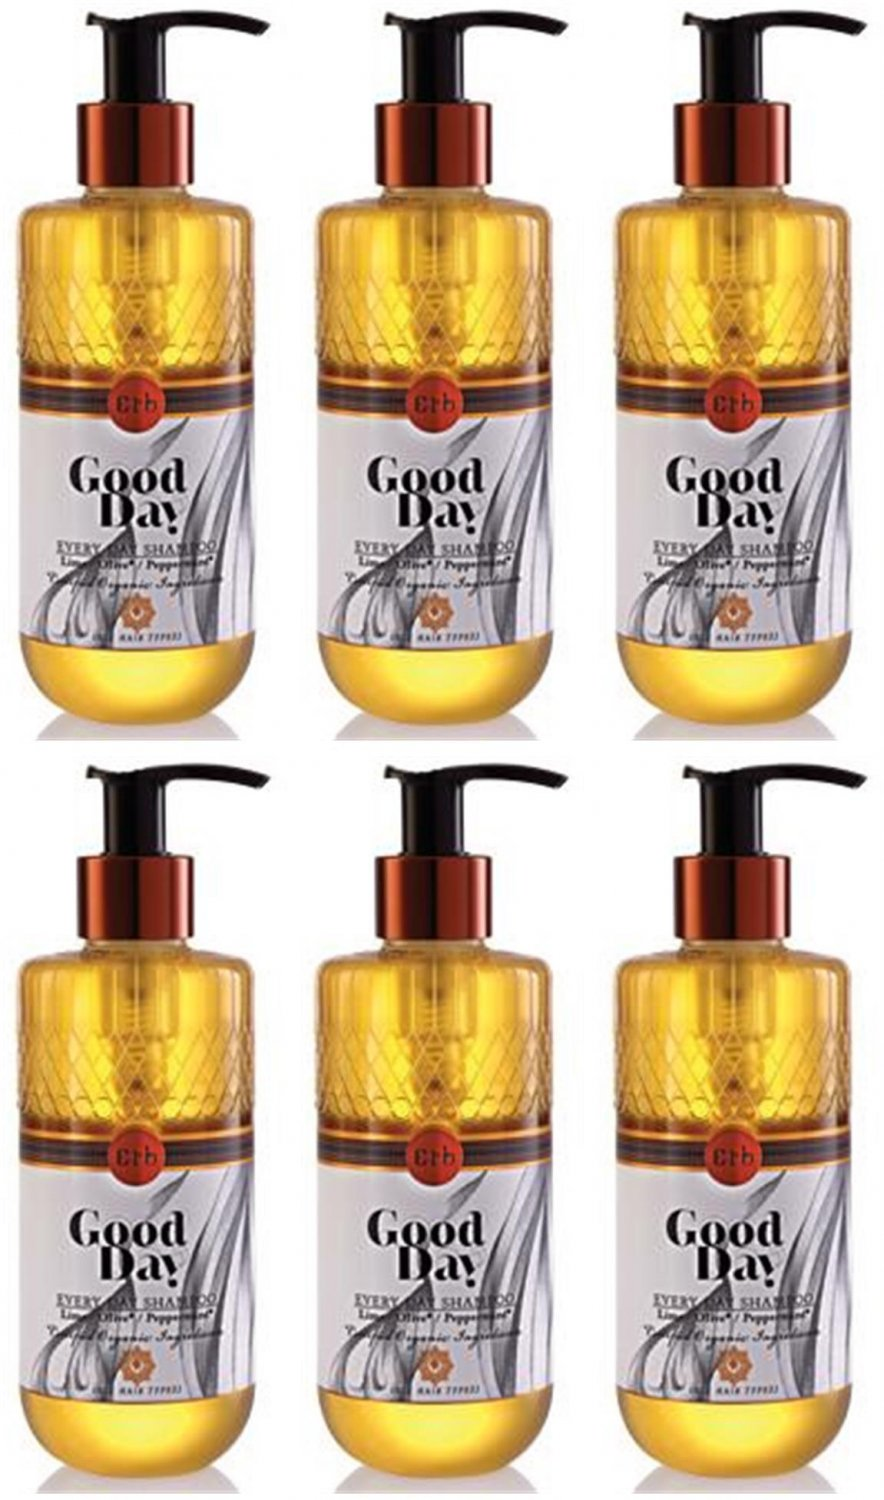 ERBS GOOD DAY EVERY DAY SHAMPOO 230ML LIME AND OLIVE HEALTHY TUMTIM T89 6 PCS/PACK